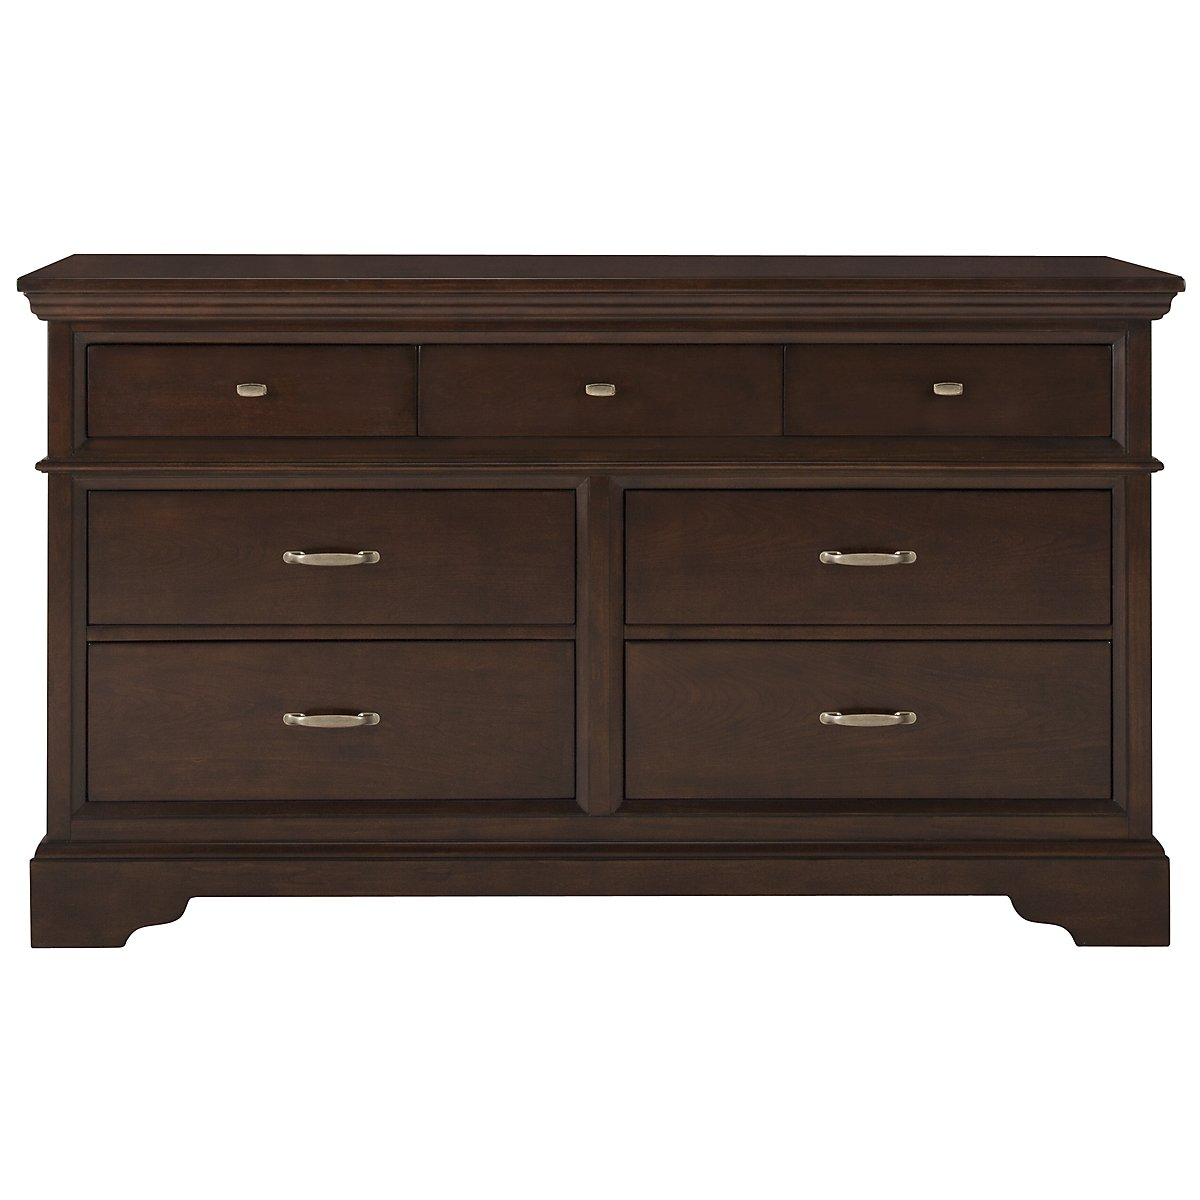 Canyon Dark Tone Small Dresser